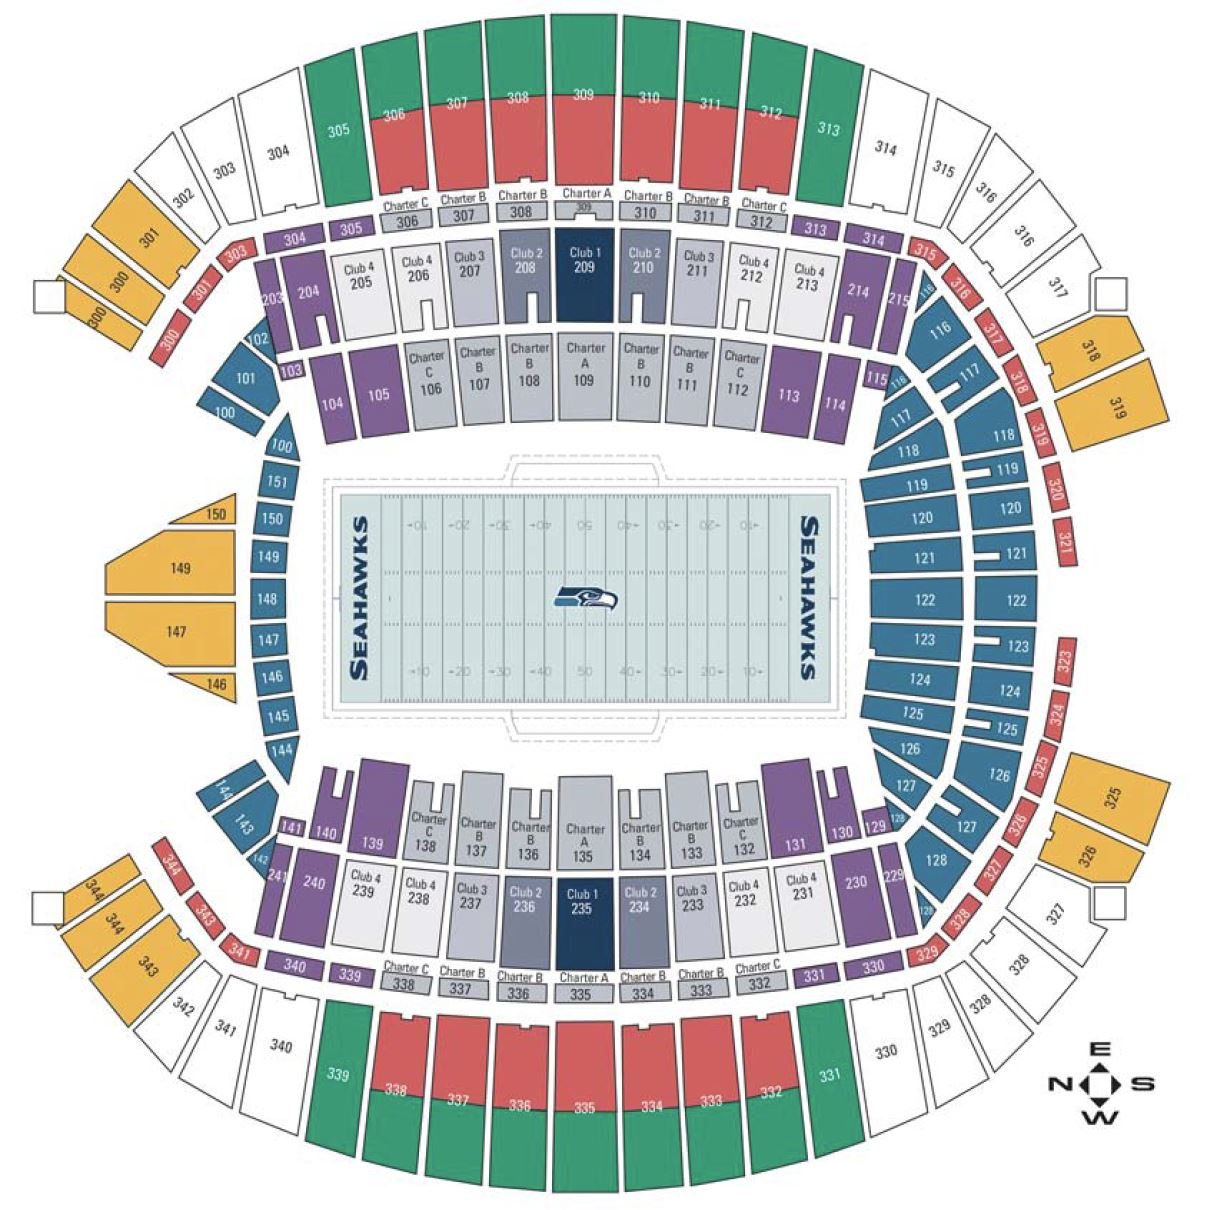 Century link seating chart tole quiztrivia co